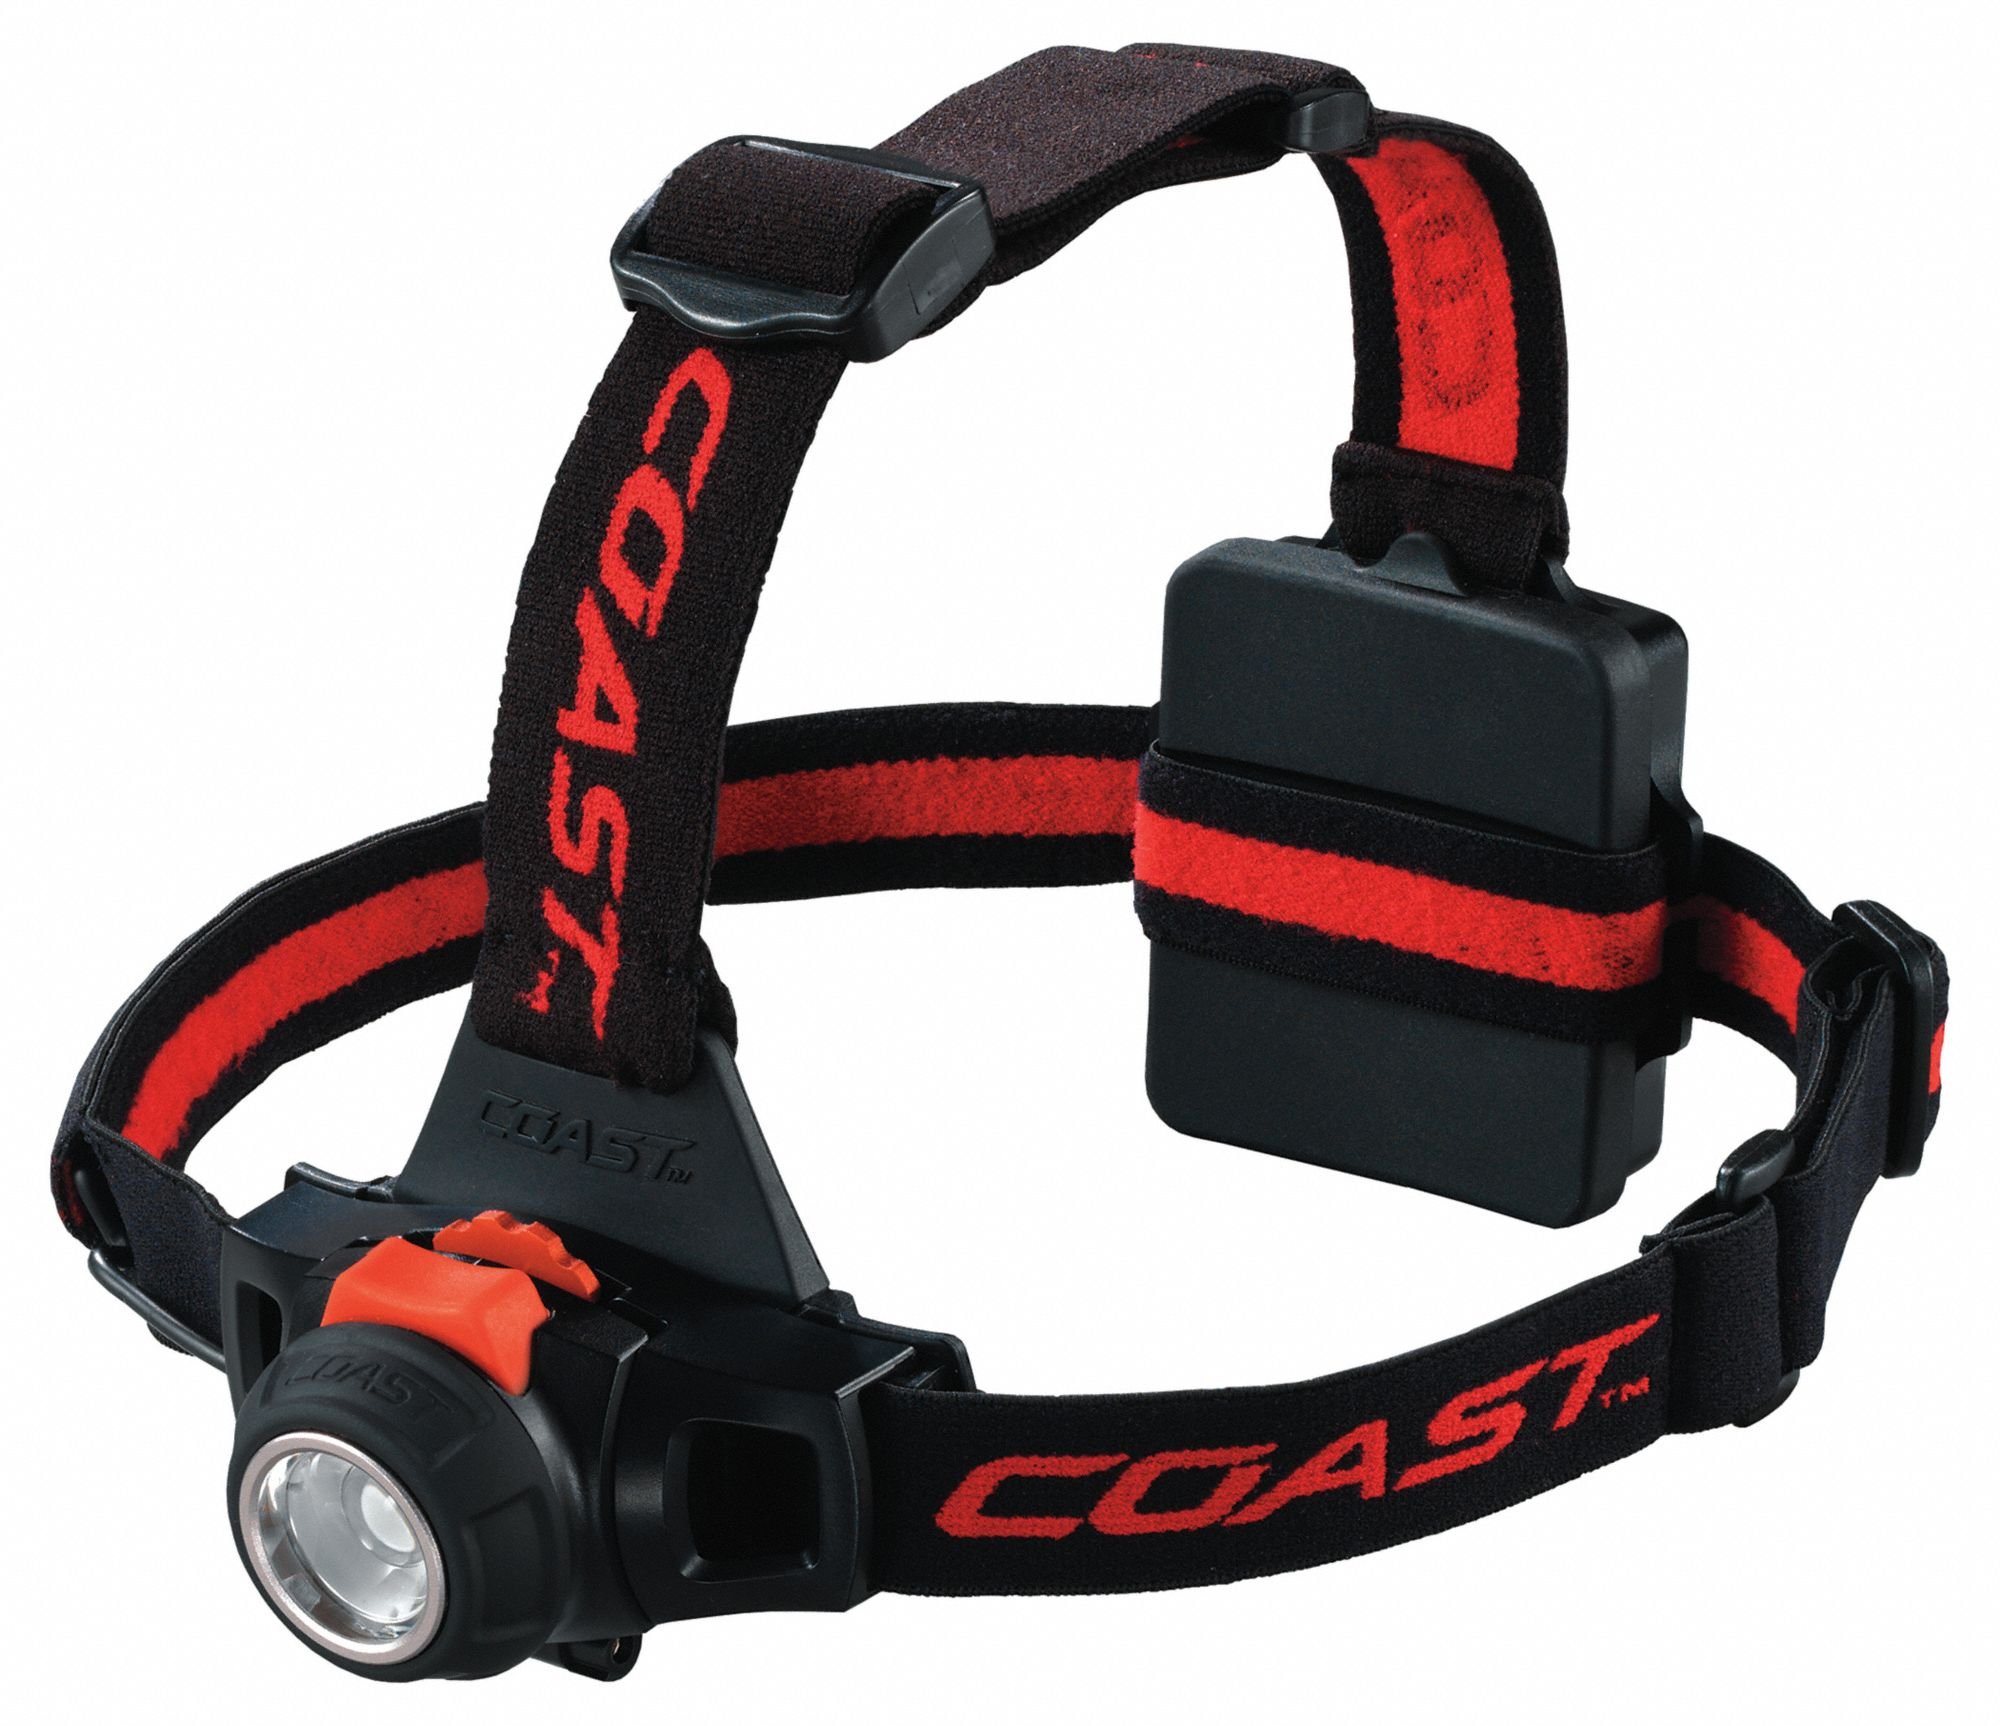 LED Headlamp, Plastic, 25,000 hr Lamp Life, Maximum Lumens Output: 330, Black